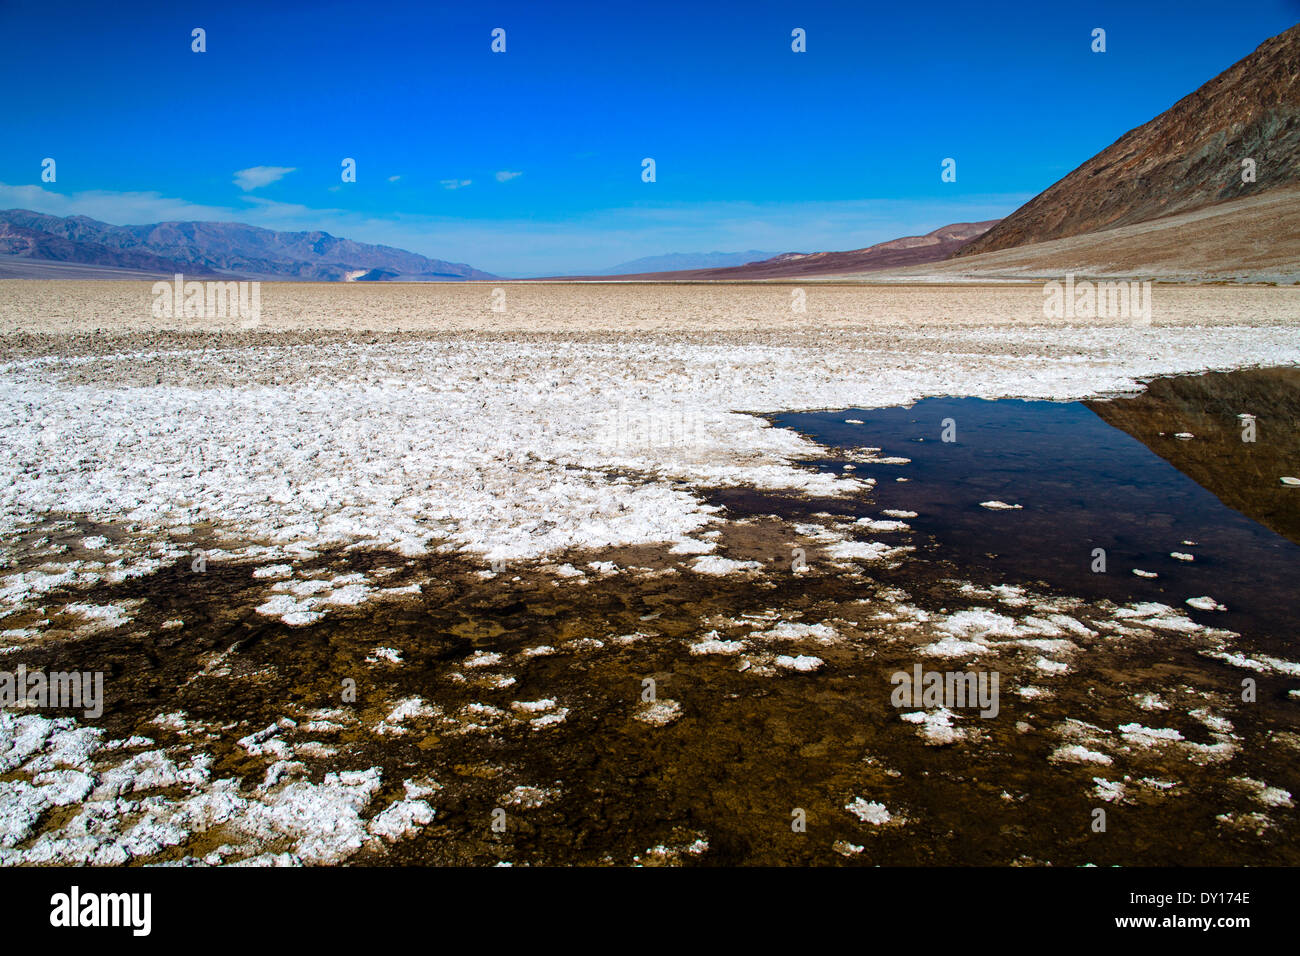 Death Valley California National Park United States of America. Bad water lowest elevation in USA -282 ft -86m below sea level - Stock Image